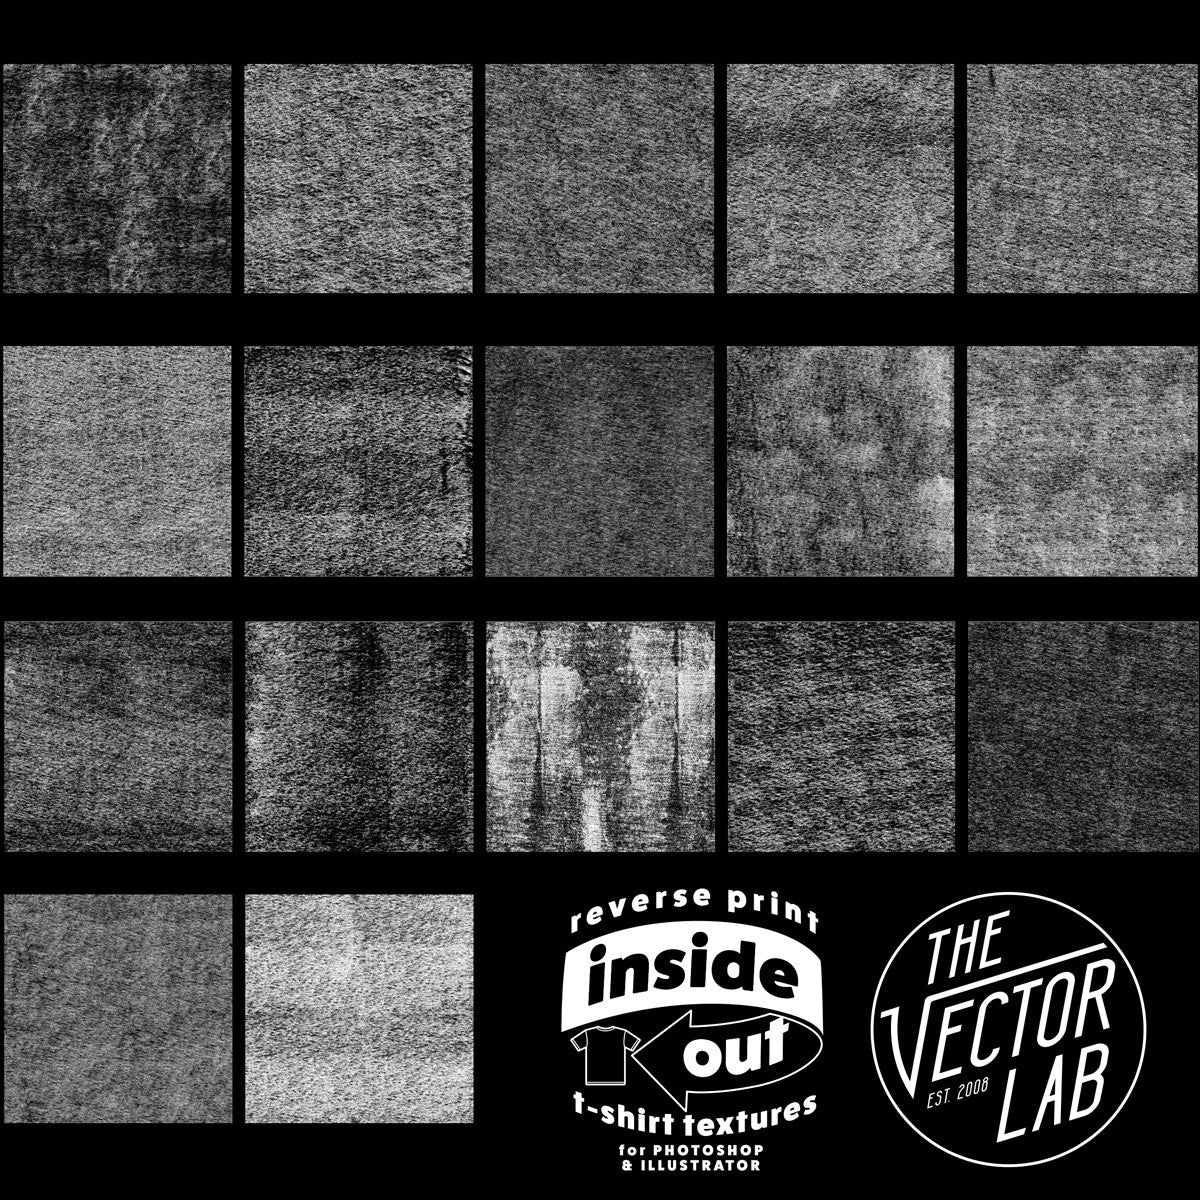 Inside Out: Reverse Print T-Shirt Textures - TheVectorLab